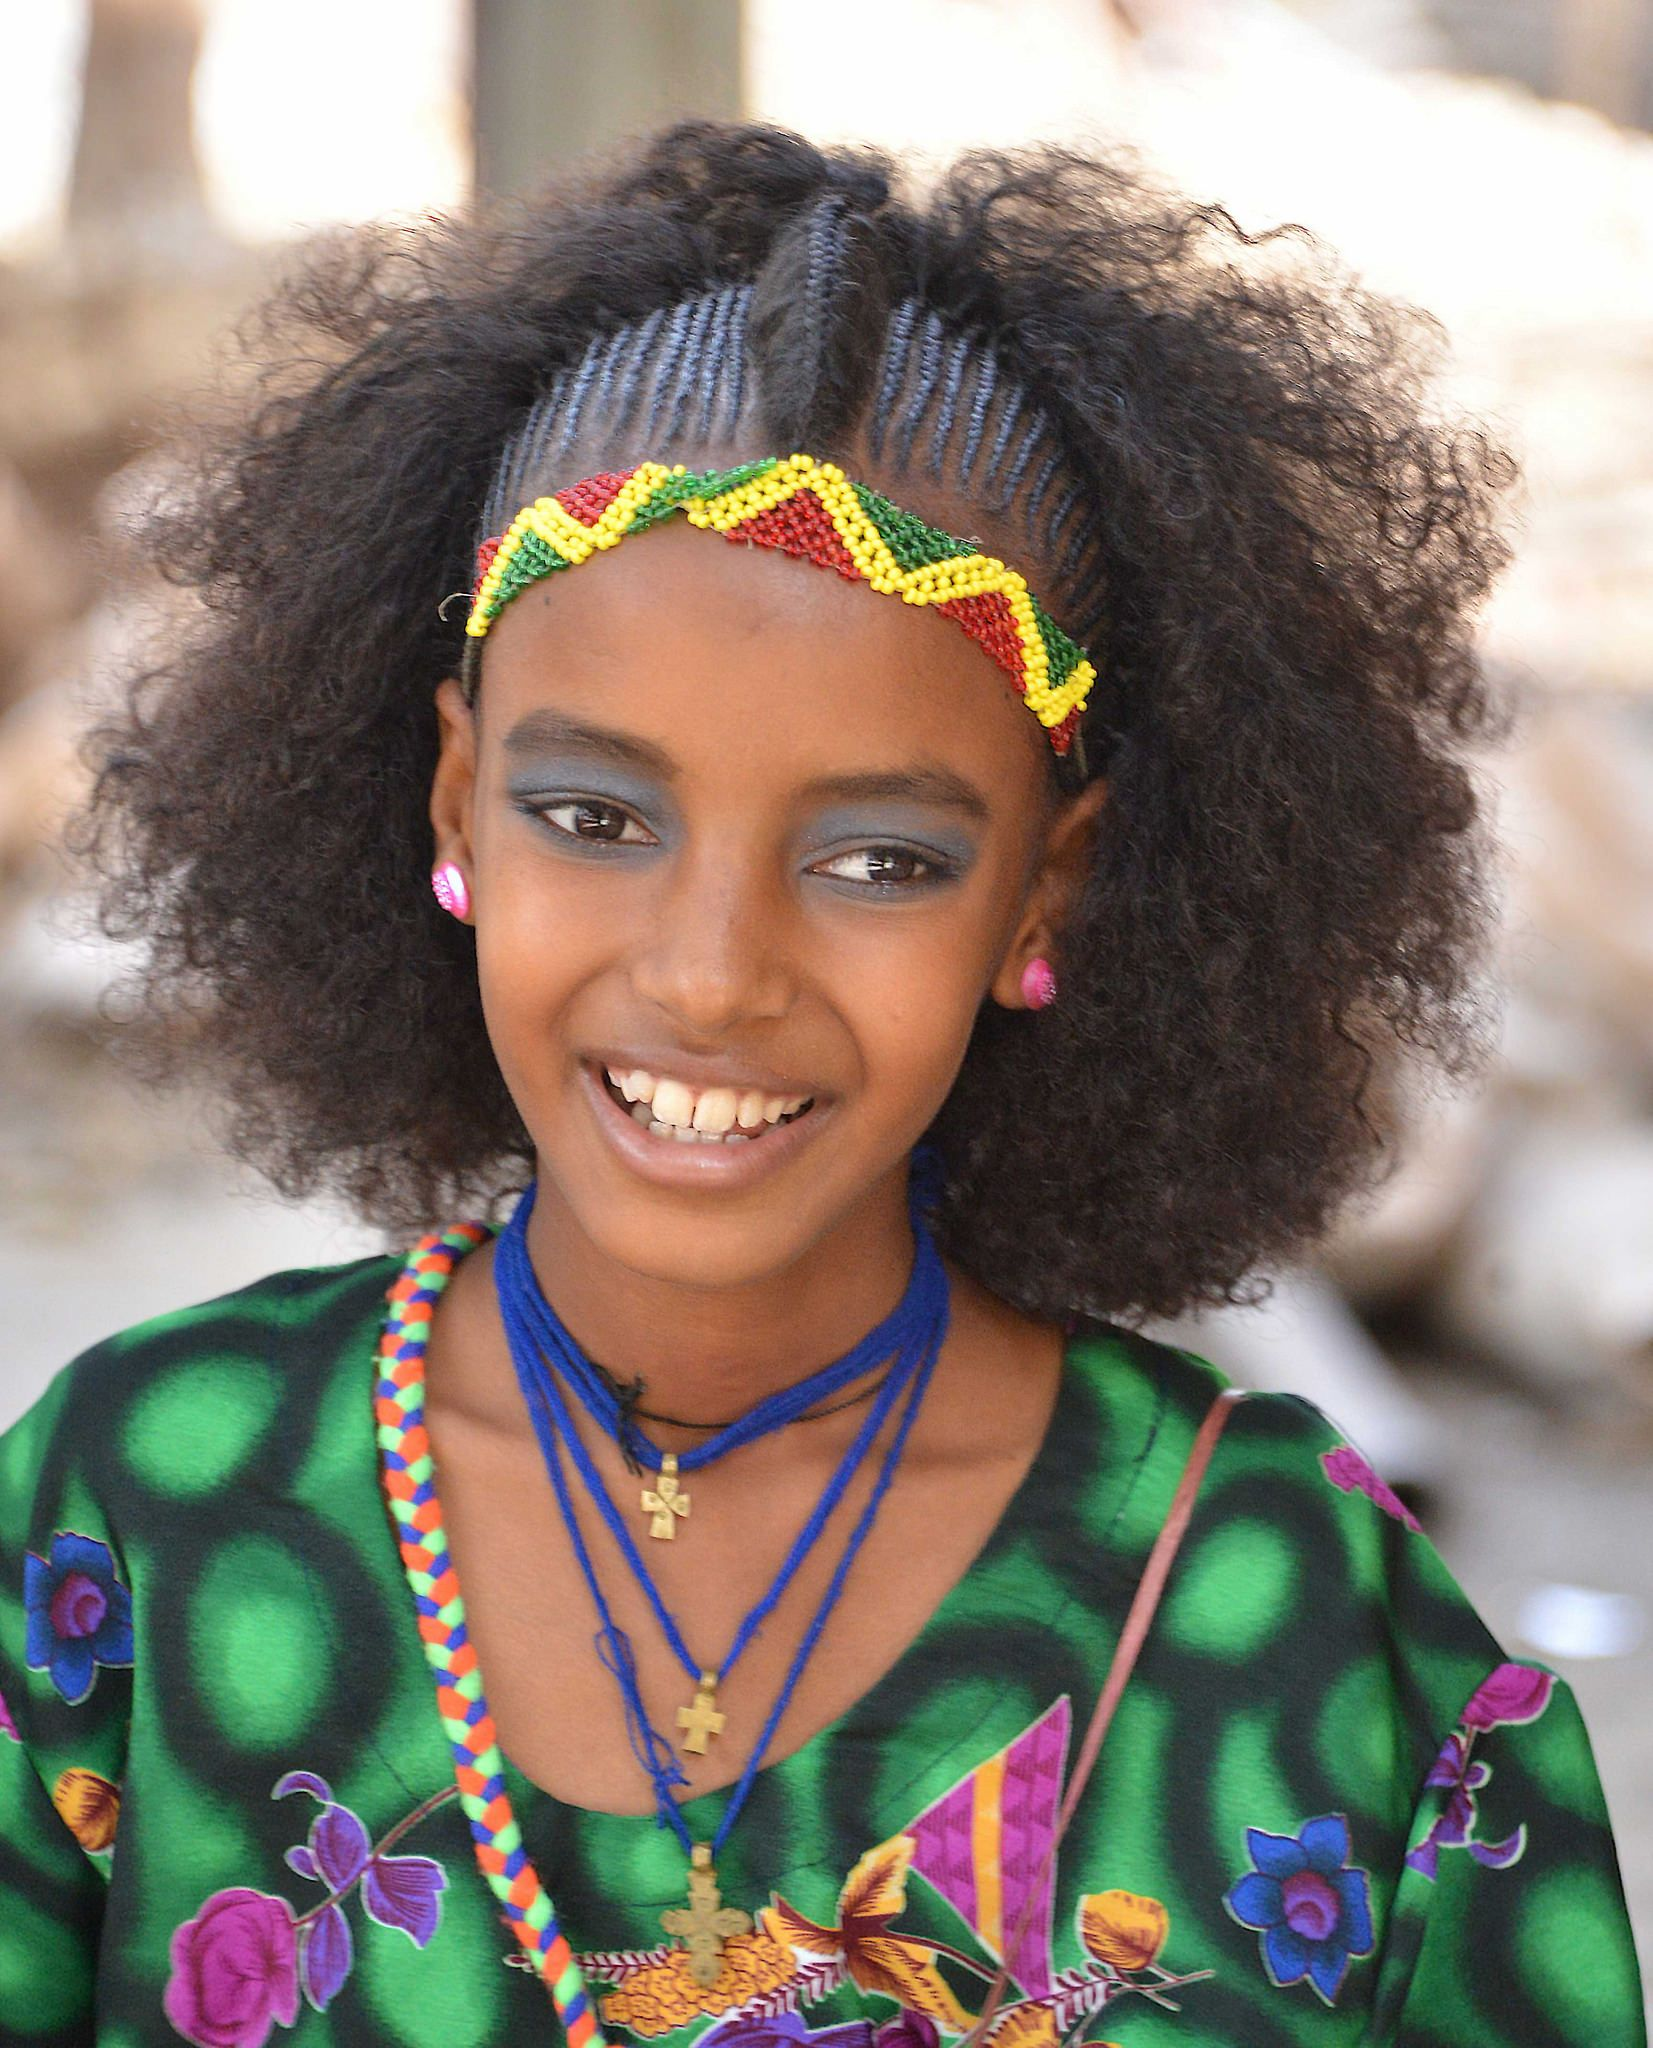 girl in mekele ethiopia ethiopia. Black Bedroom Furniture Sets. Home Design Ideas